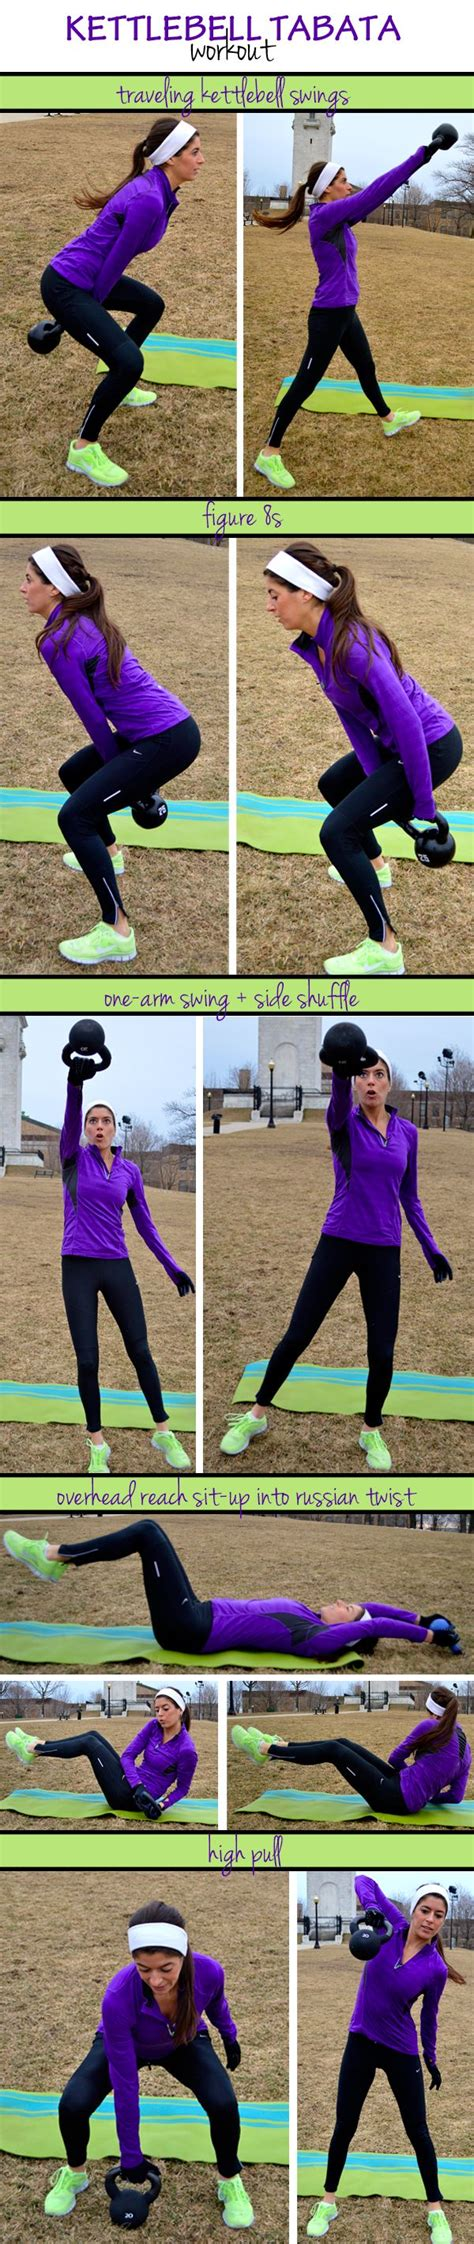 tabata kettlebell swings pumps and iron kettleball tabata workout our skinny mom